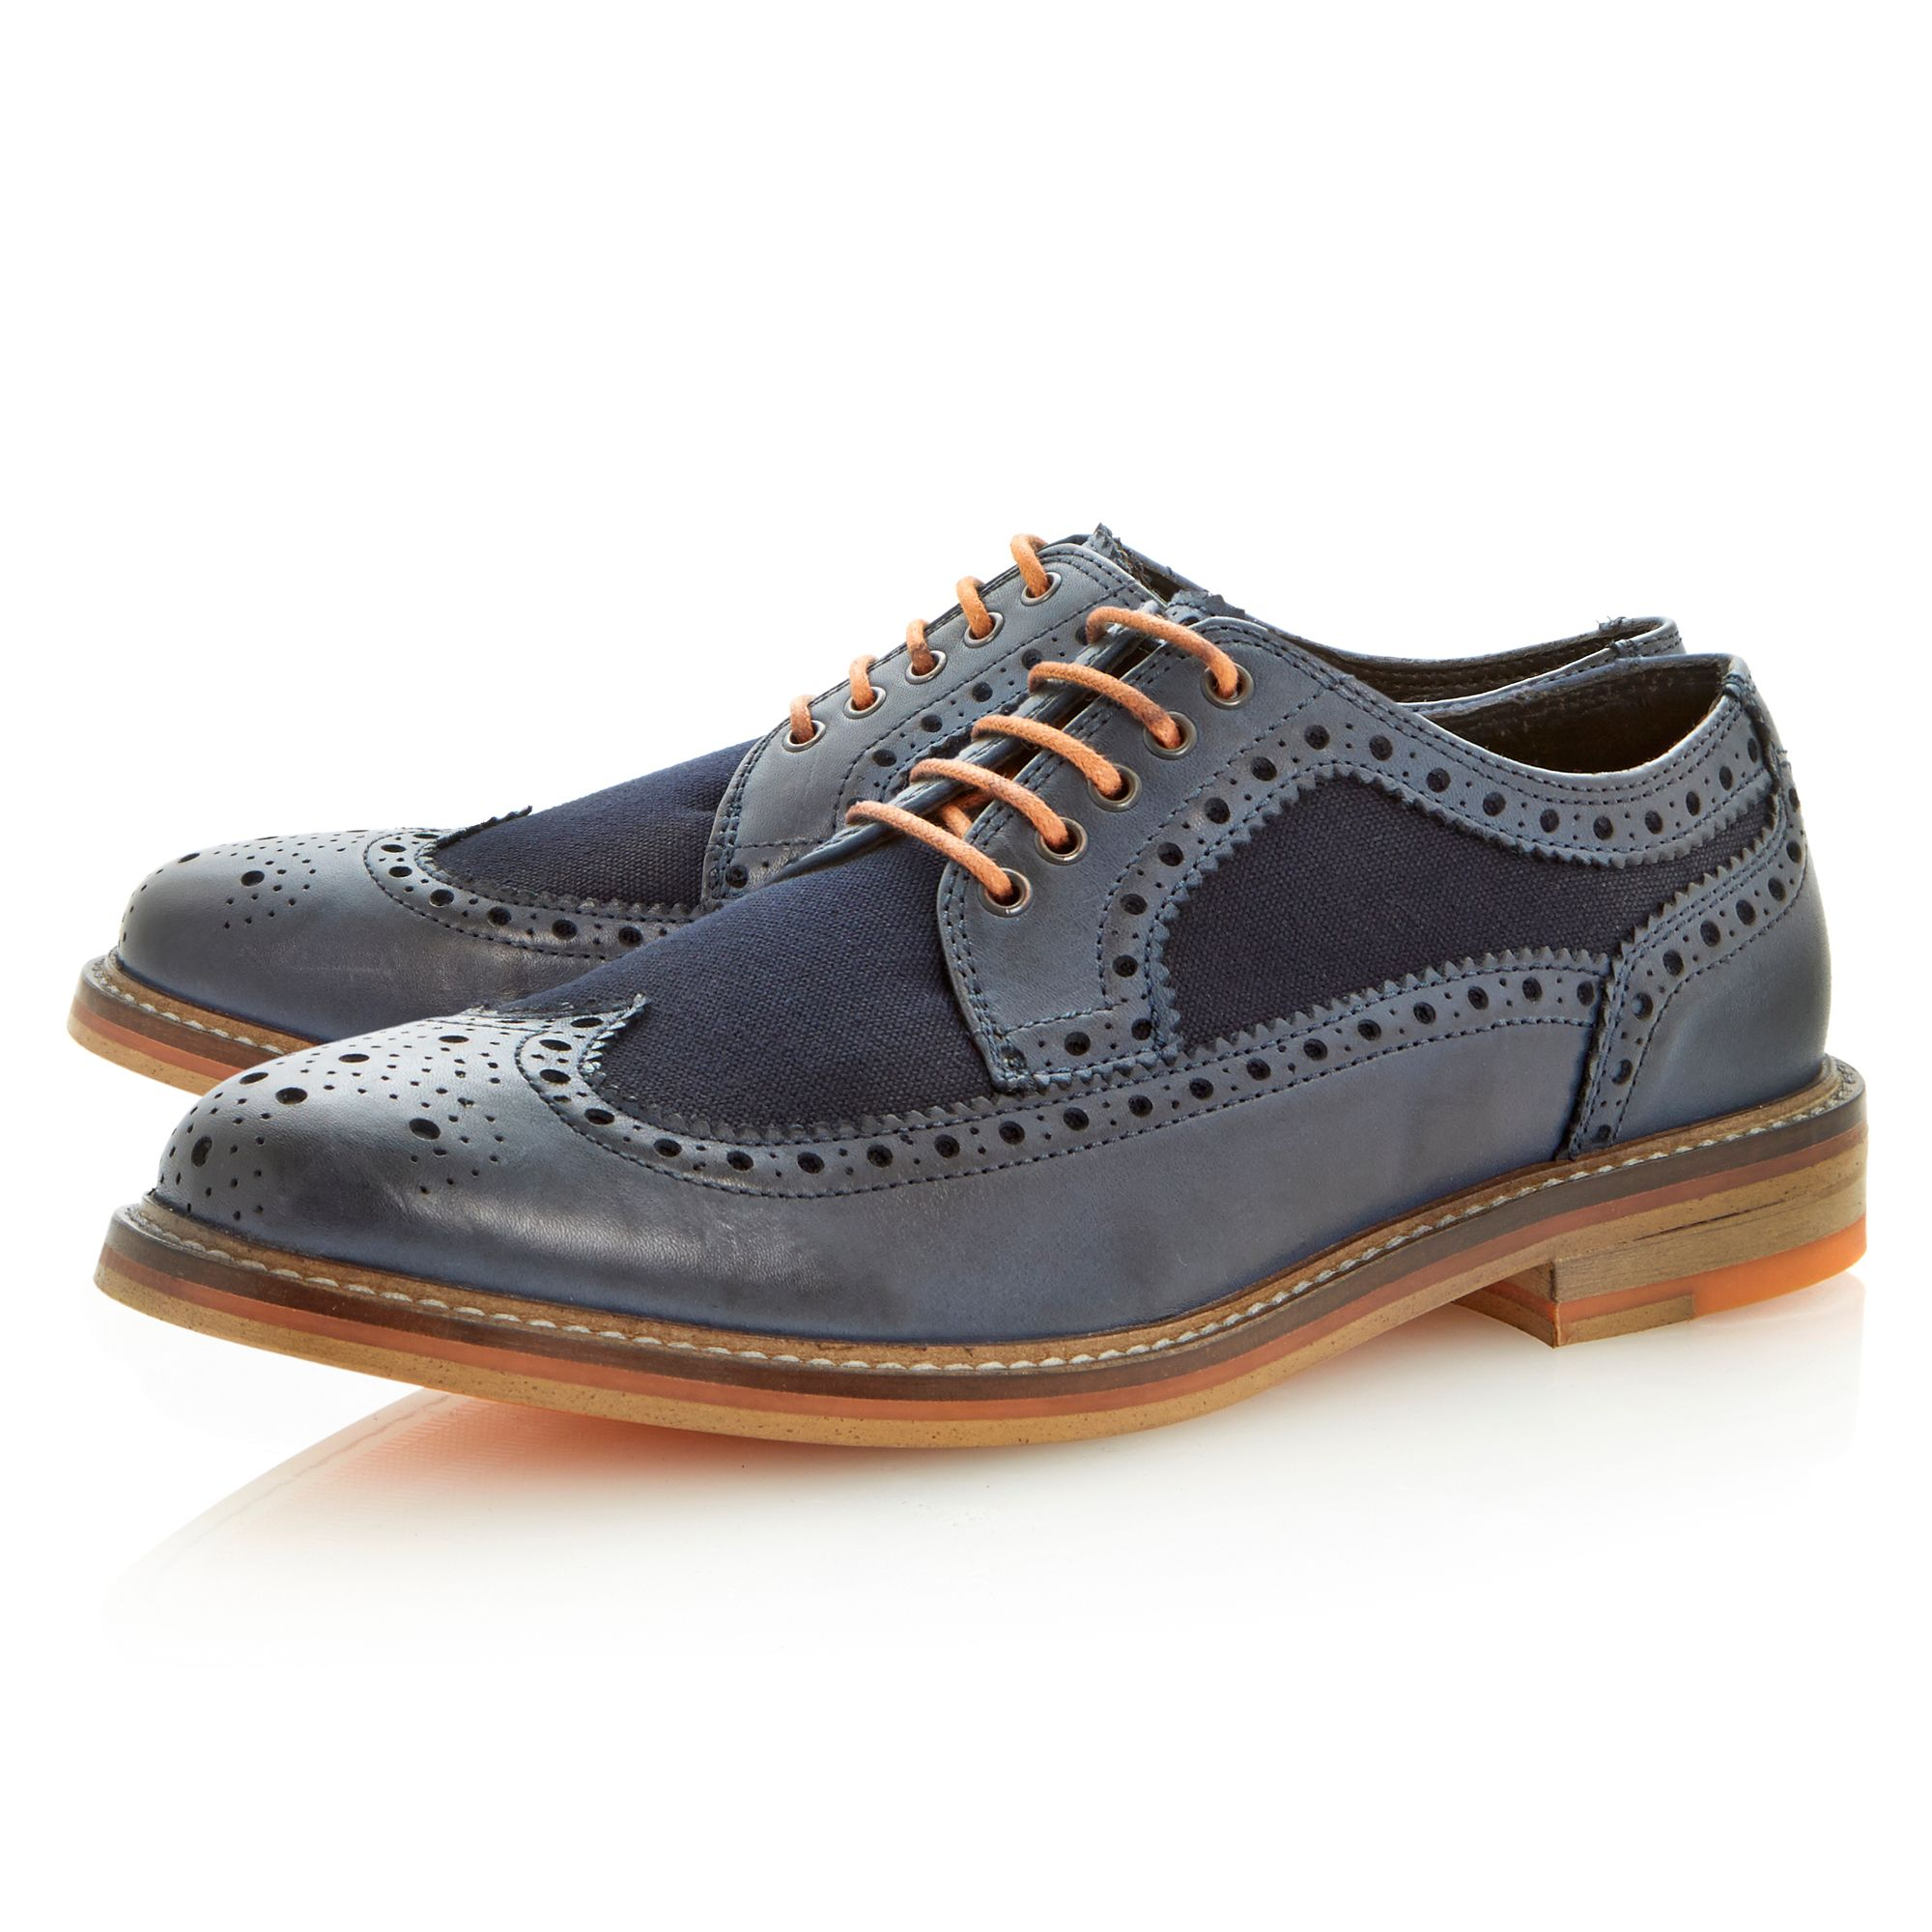 Bethnal green c lace up brogues